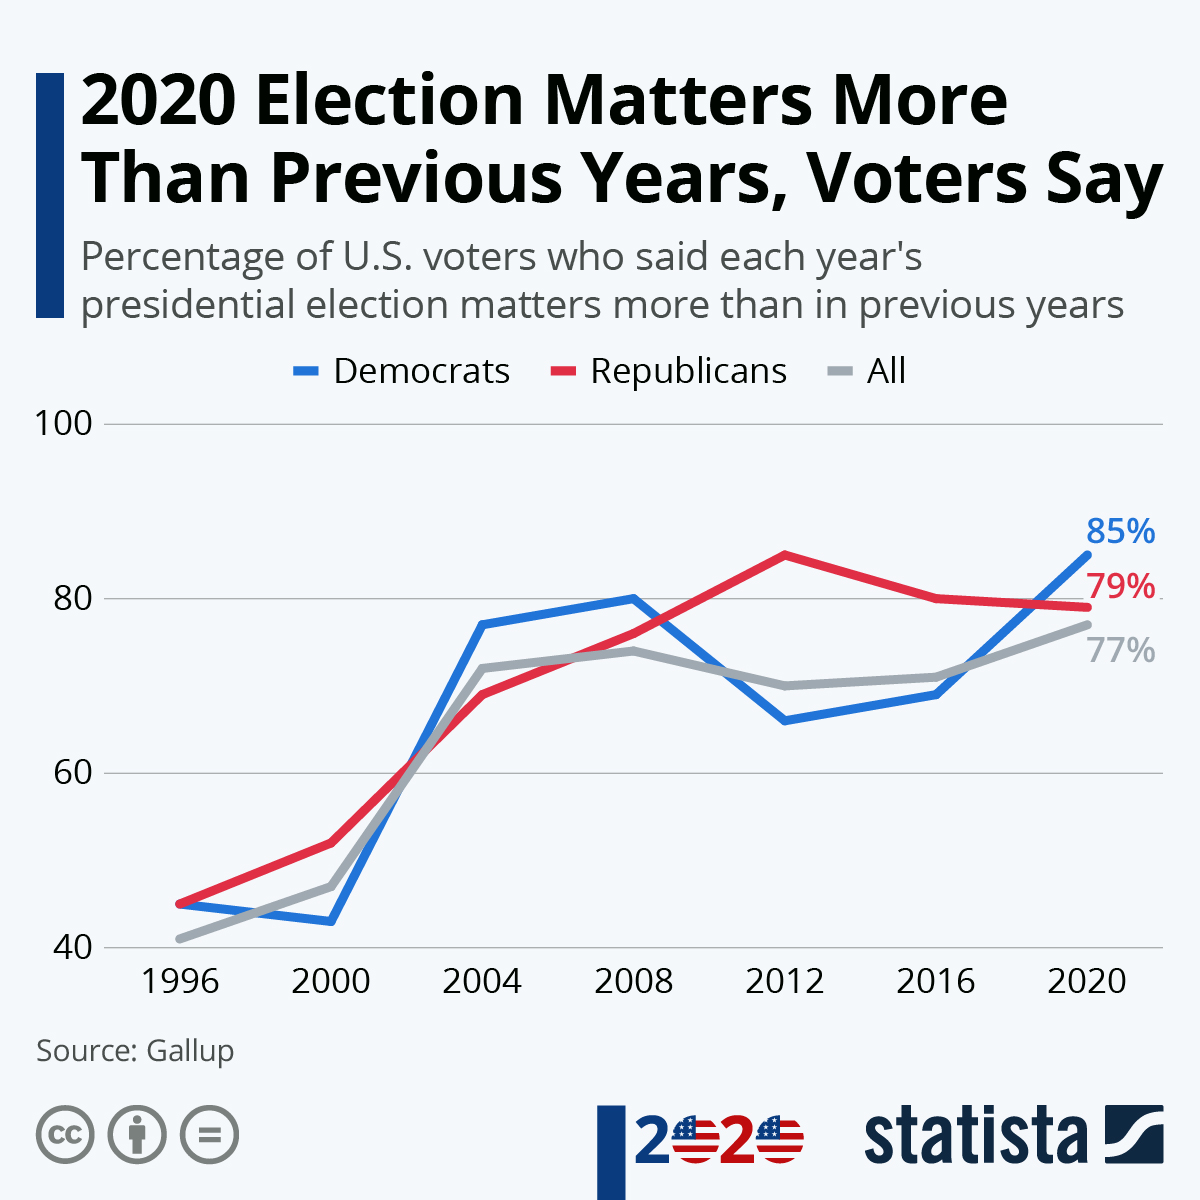 Statista On Twitter With Two Weeks To Go For The Presidential Election A Recent Gallup Survey Reported 77 Of All U S Registered Voters Stating That The Outcome Of This Year S Presidential Election